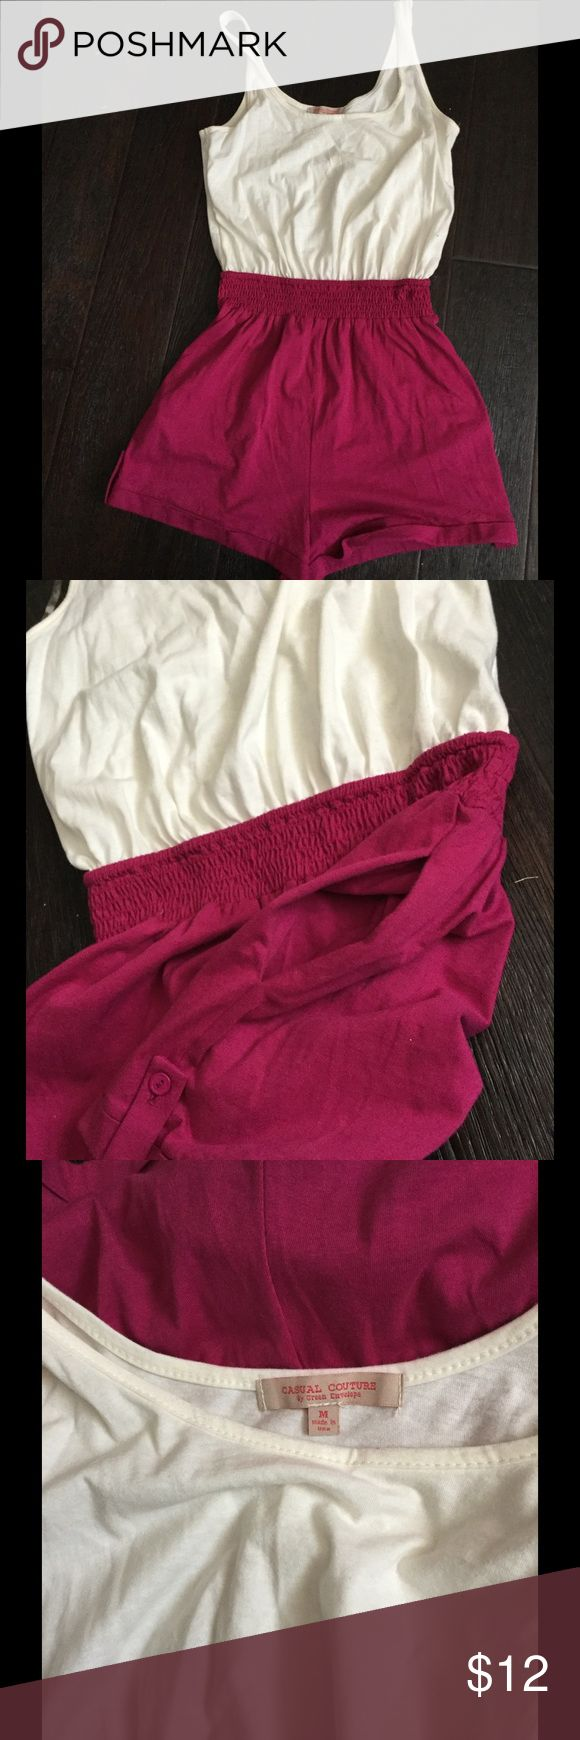 Casual couture raspberry and cream Jumper Size M Casual couture. Made in the USA. 100% cotton. Raspberry and cream color. Pockets. Button detail on the outer short. Size M. casual couture Other